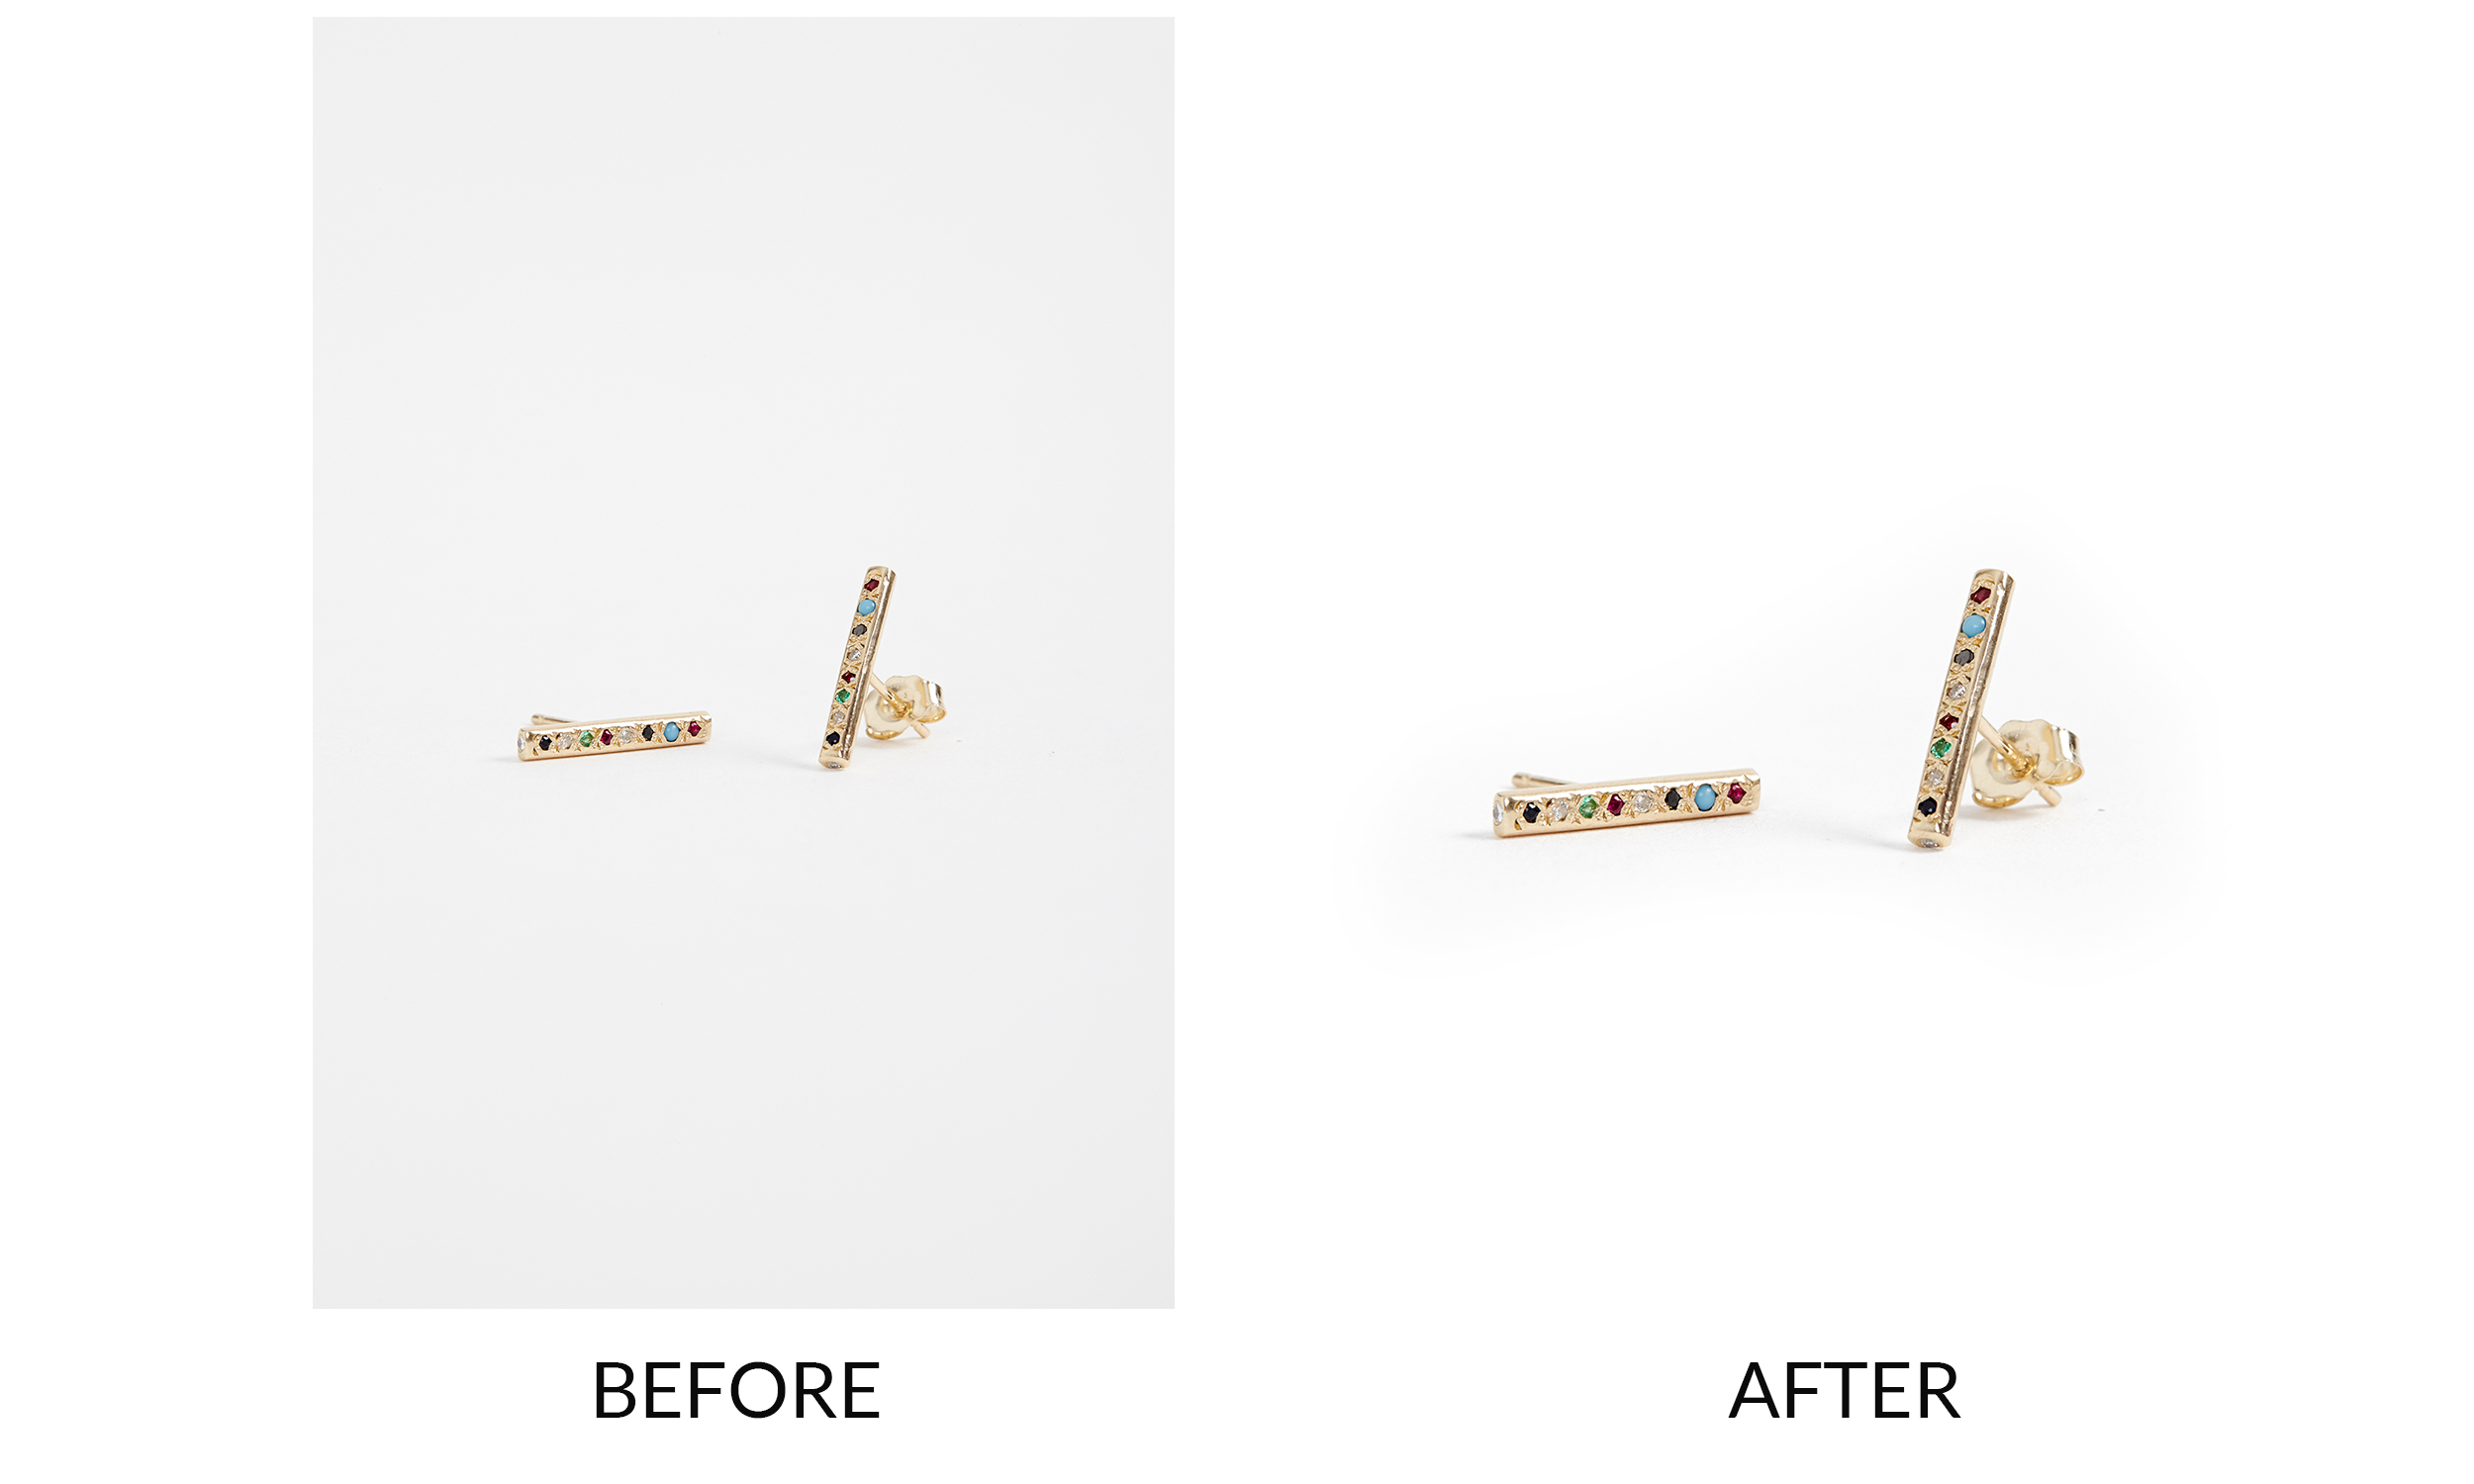 Squarespace_ACheng_BeforeAfter_02.jpg